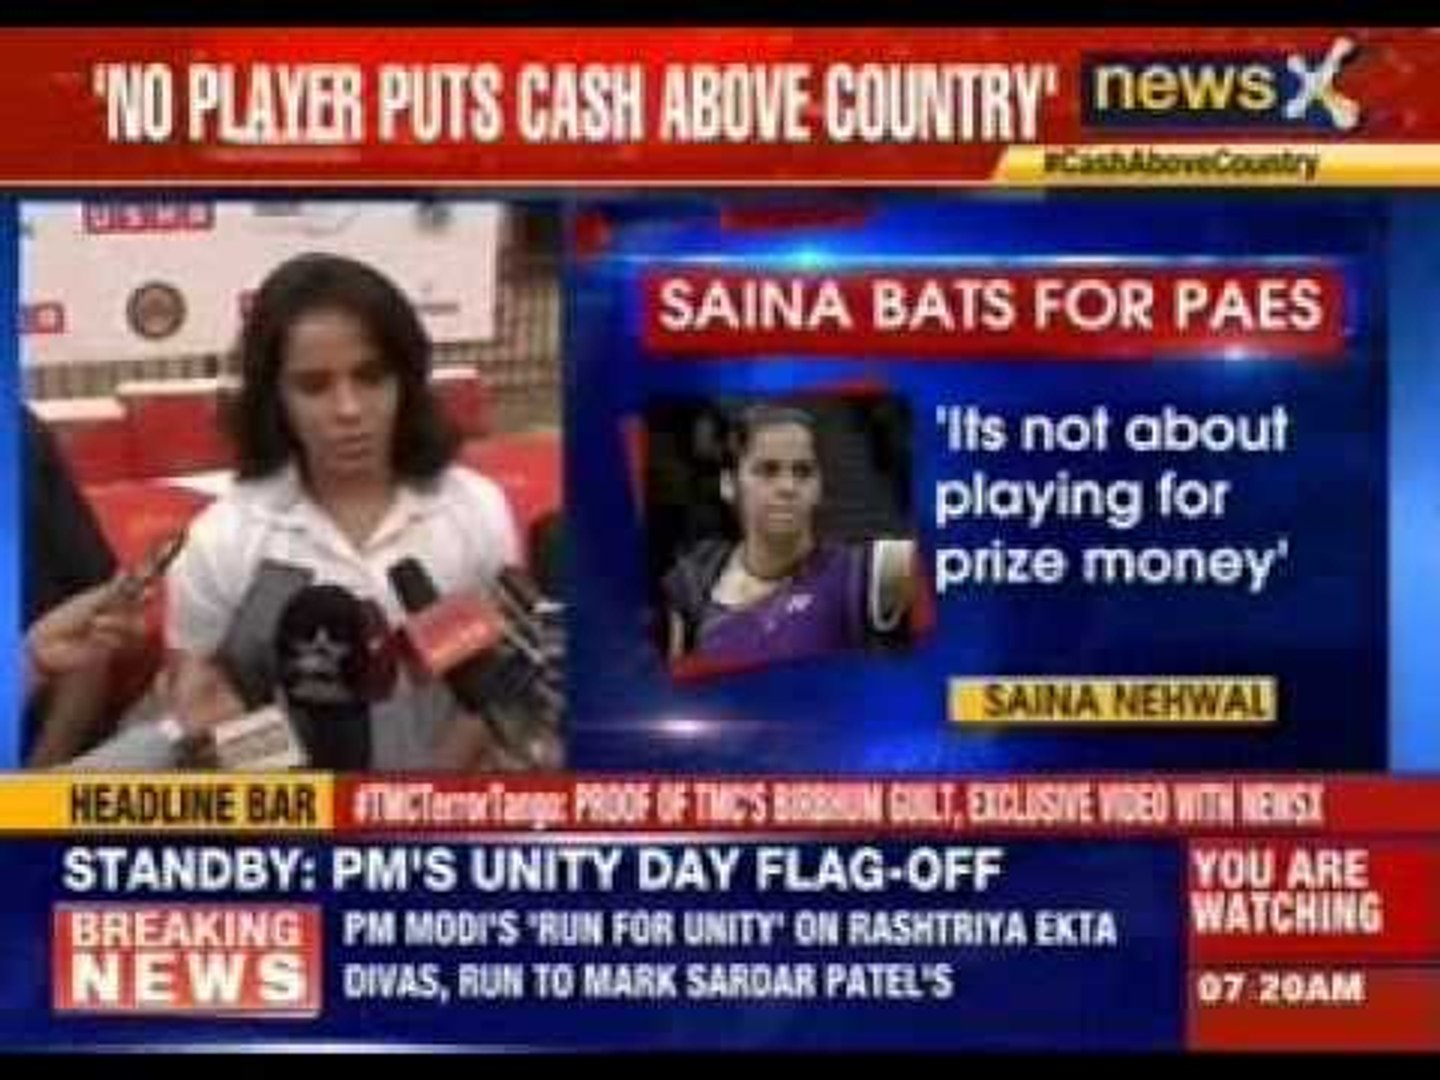 #CashAboveCountry:' No player puts cash above country', says sports Ministry